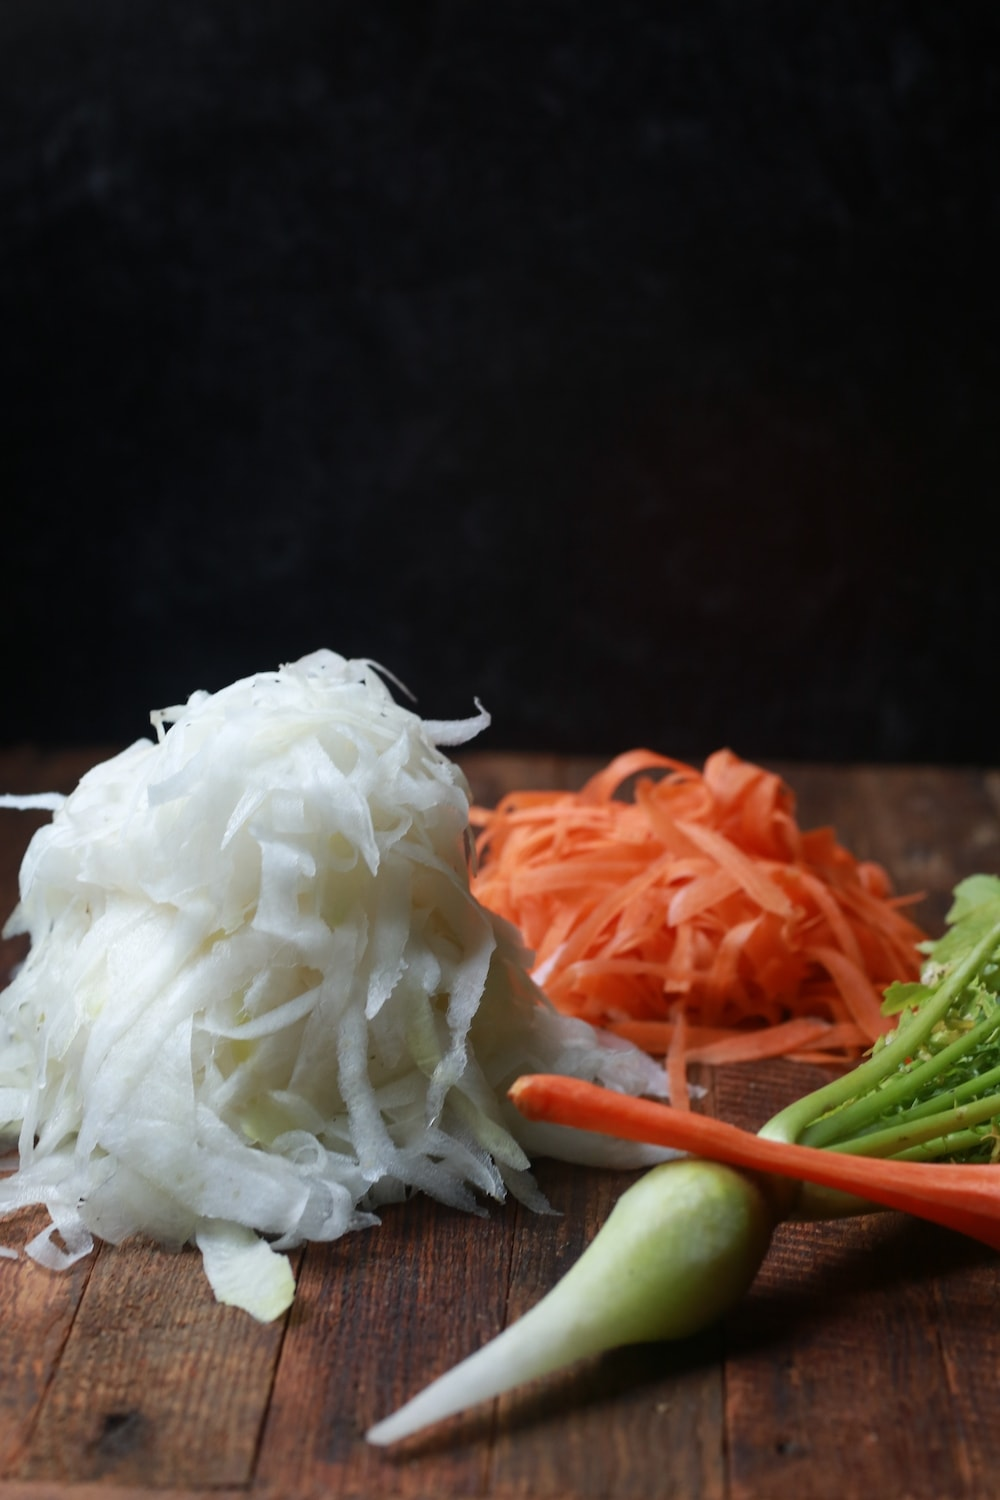 Peeled Daikon Radishes and Carrots on wood with a black background